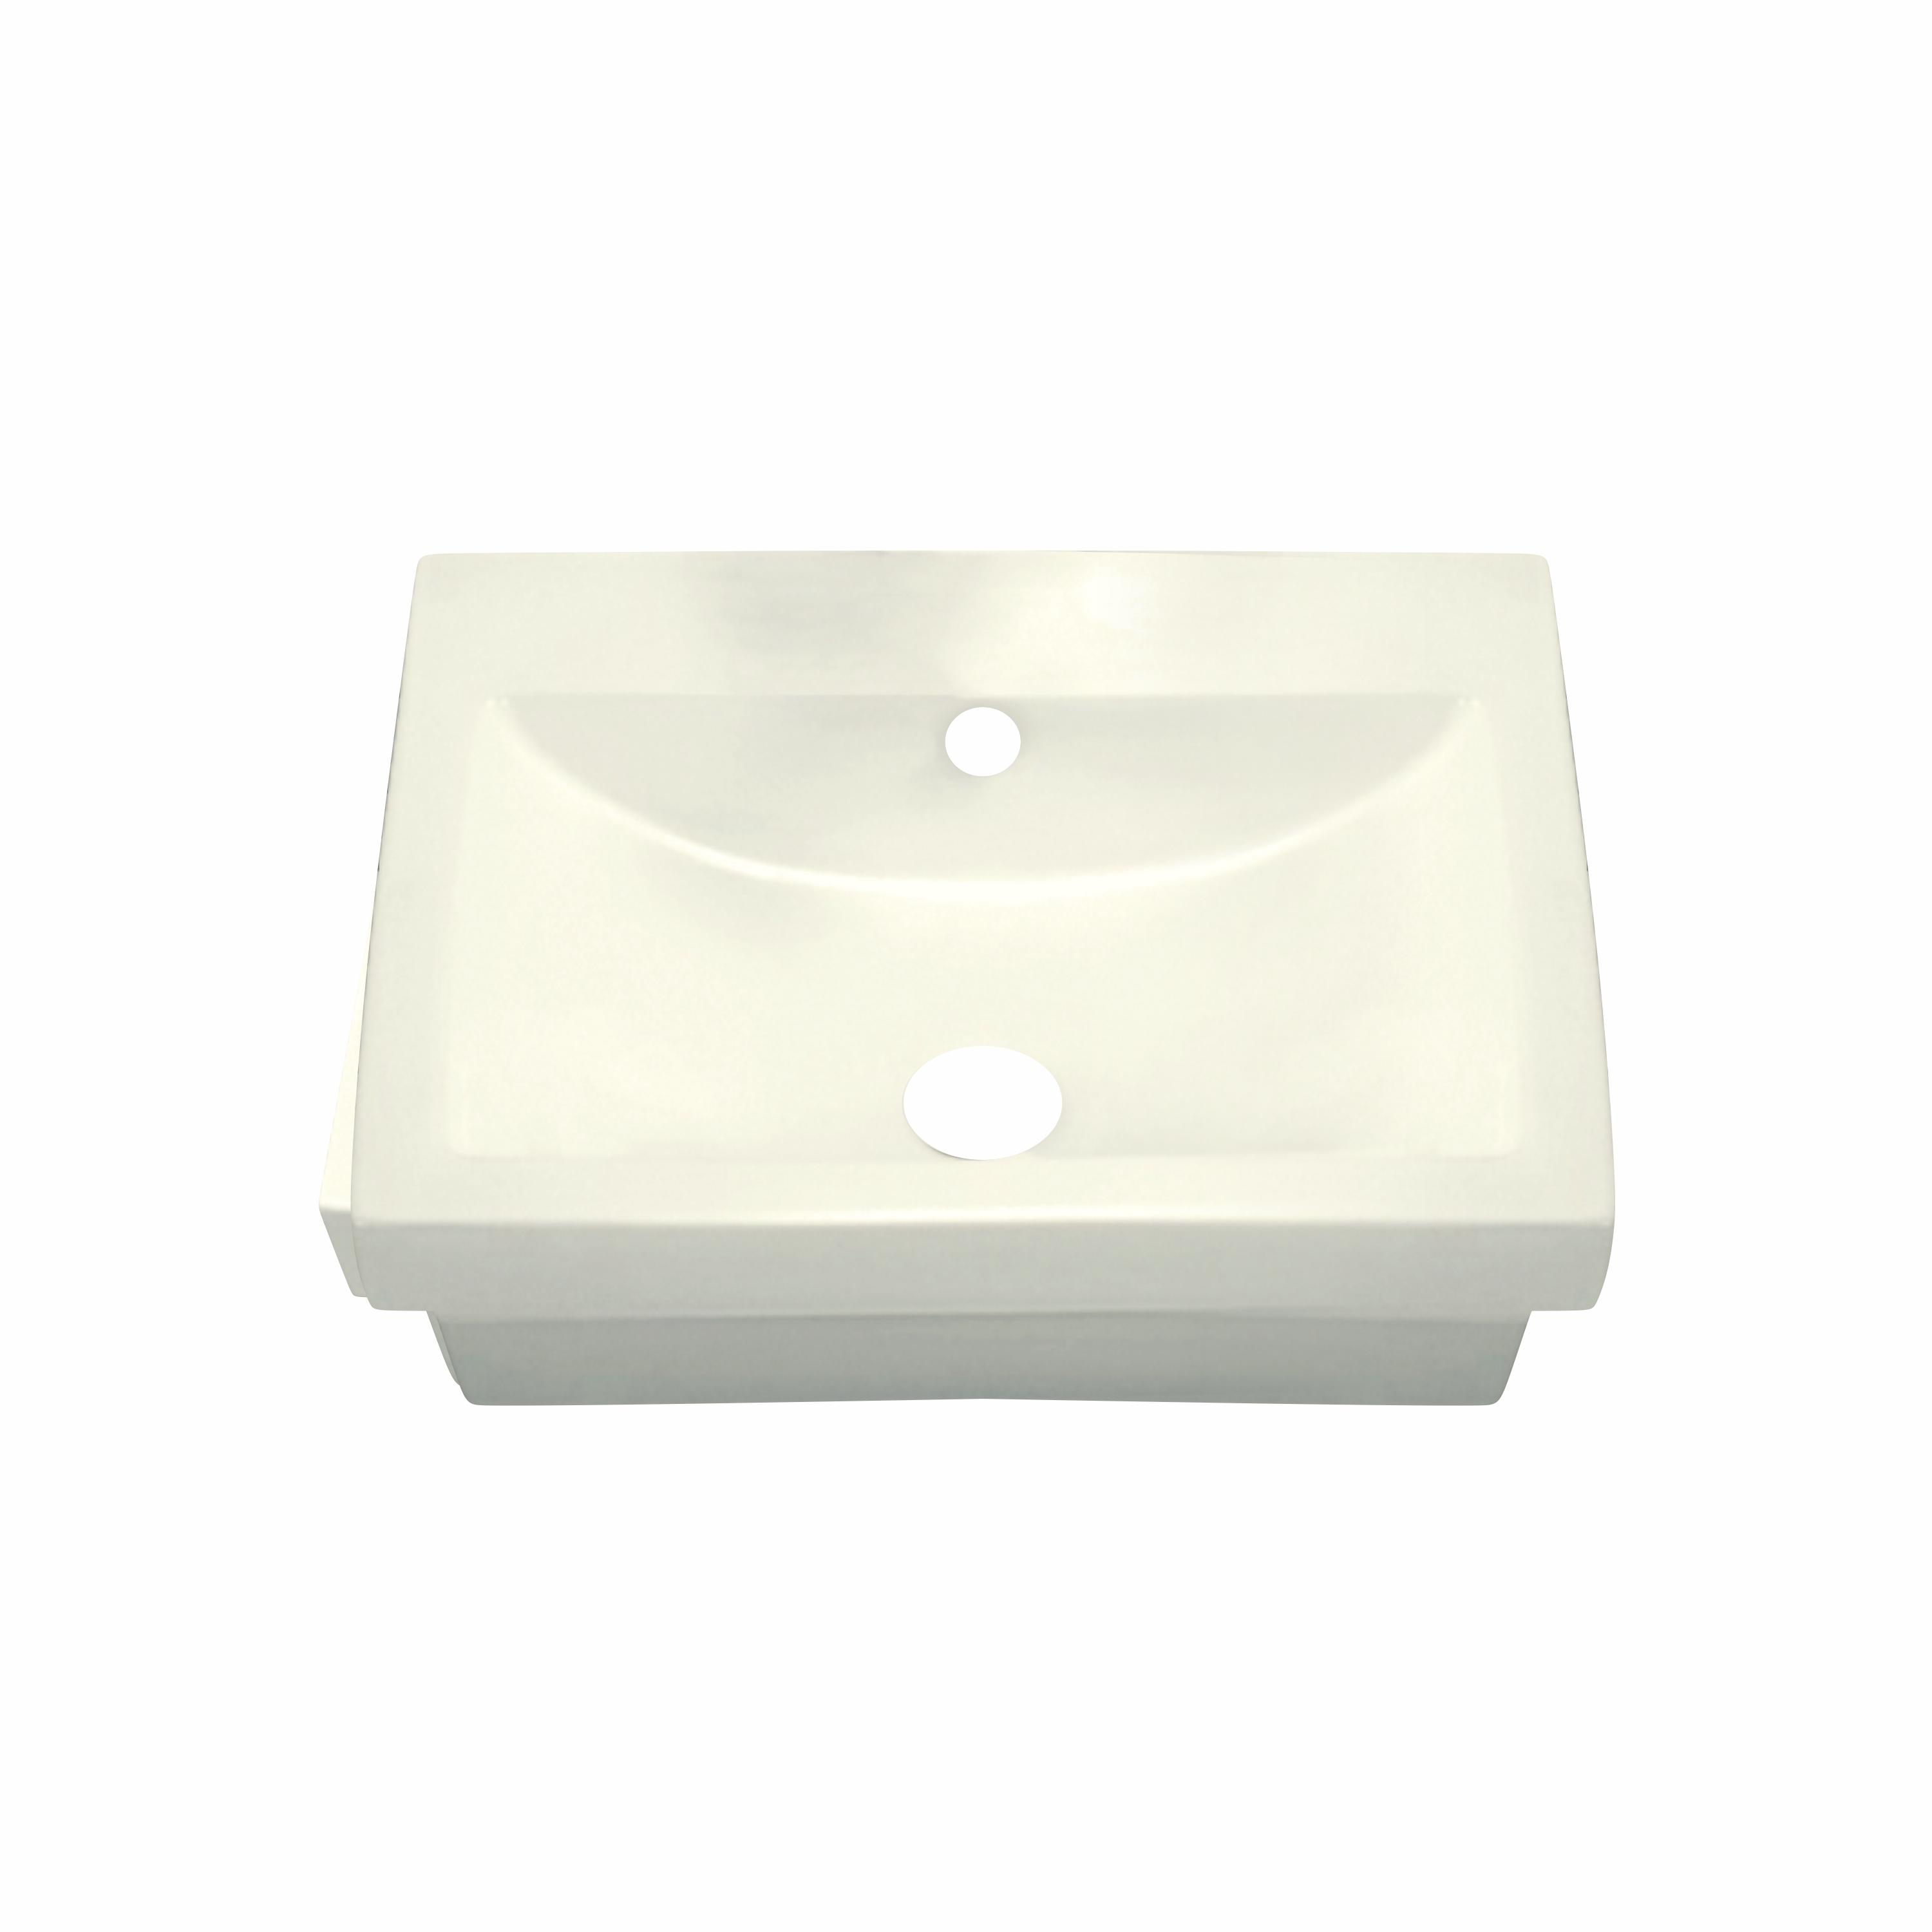 moby rectangular shaped drop in or vessel sink 21 1 2 x 18 x 6 3 4 ivory porcelain ch650 delray